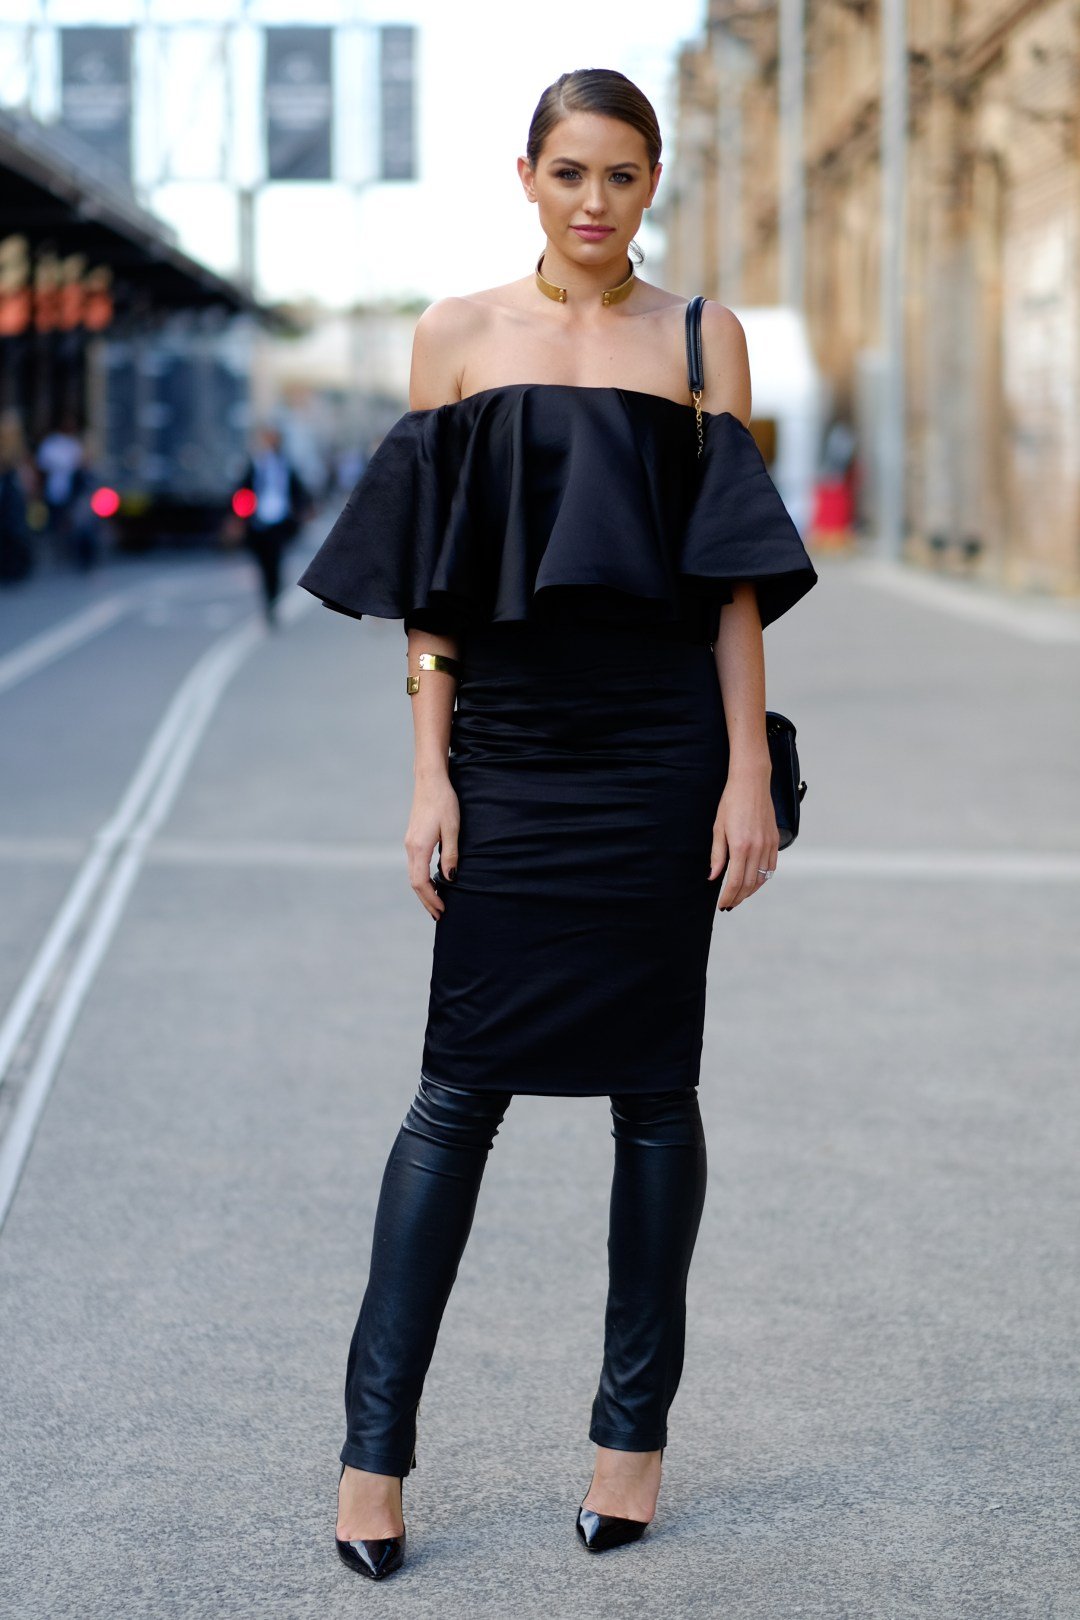 Wear dresses in winter Dress over pants - scstylecaster.com